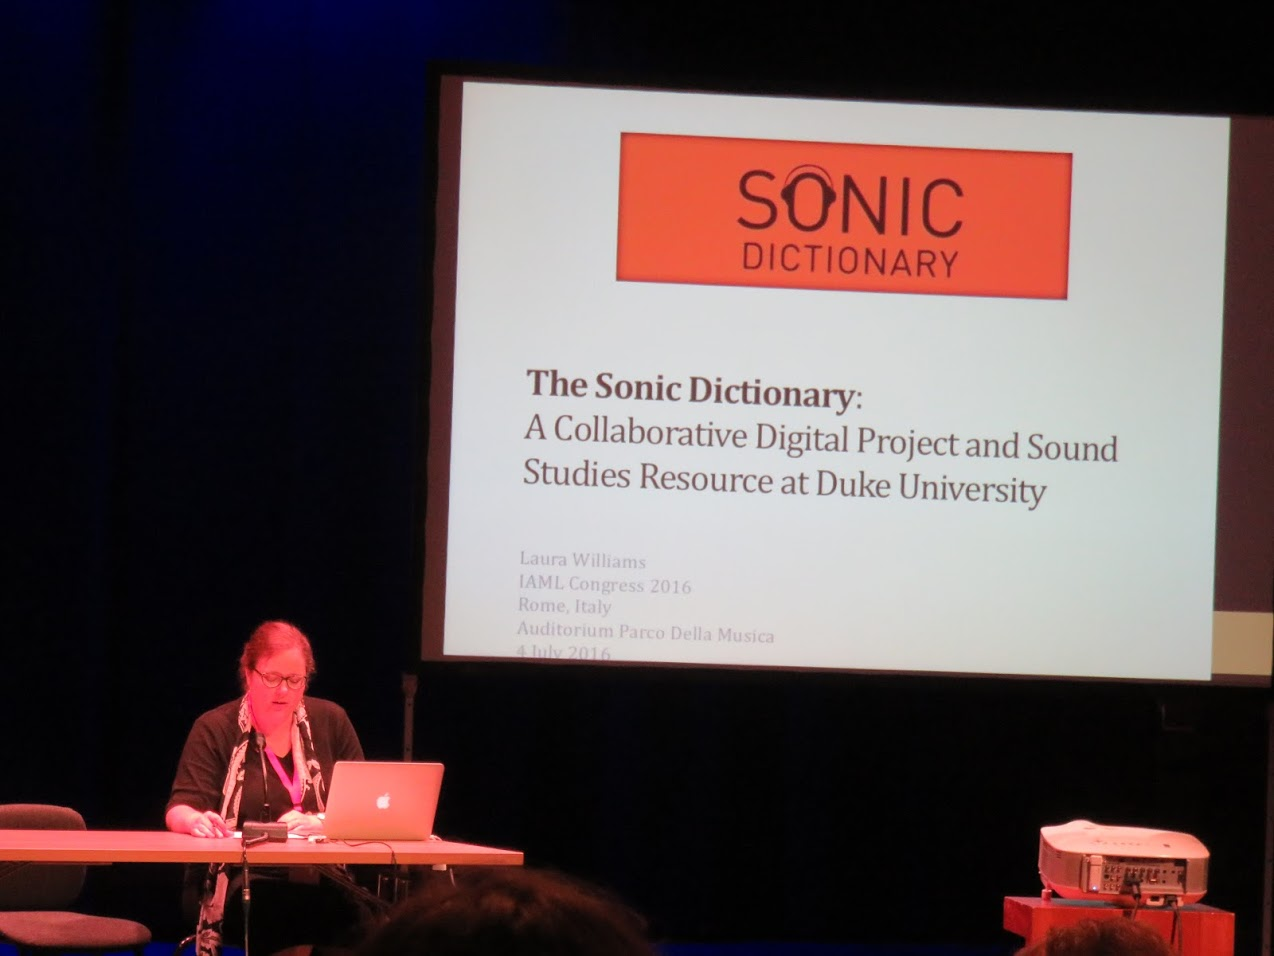 Sonic Dictionary, photo by Marianna Zsoldos